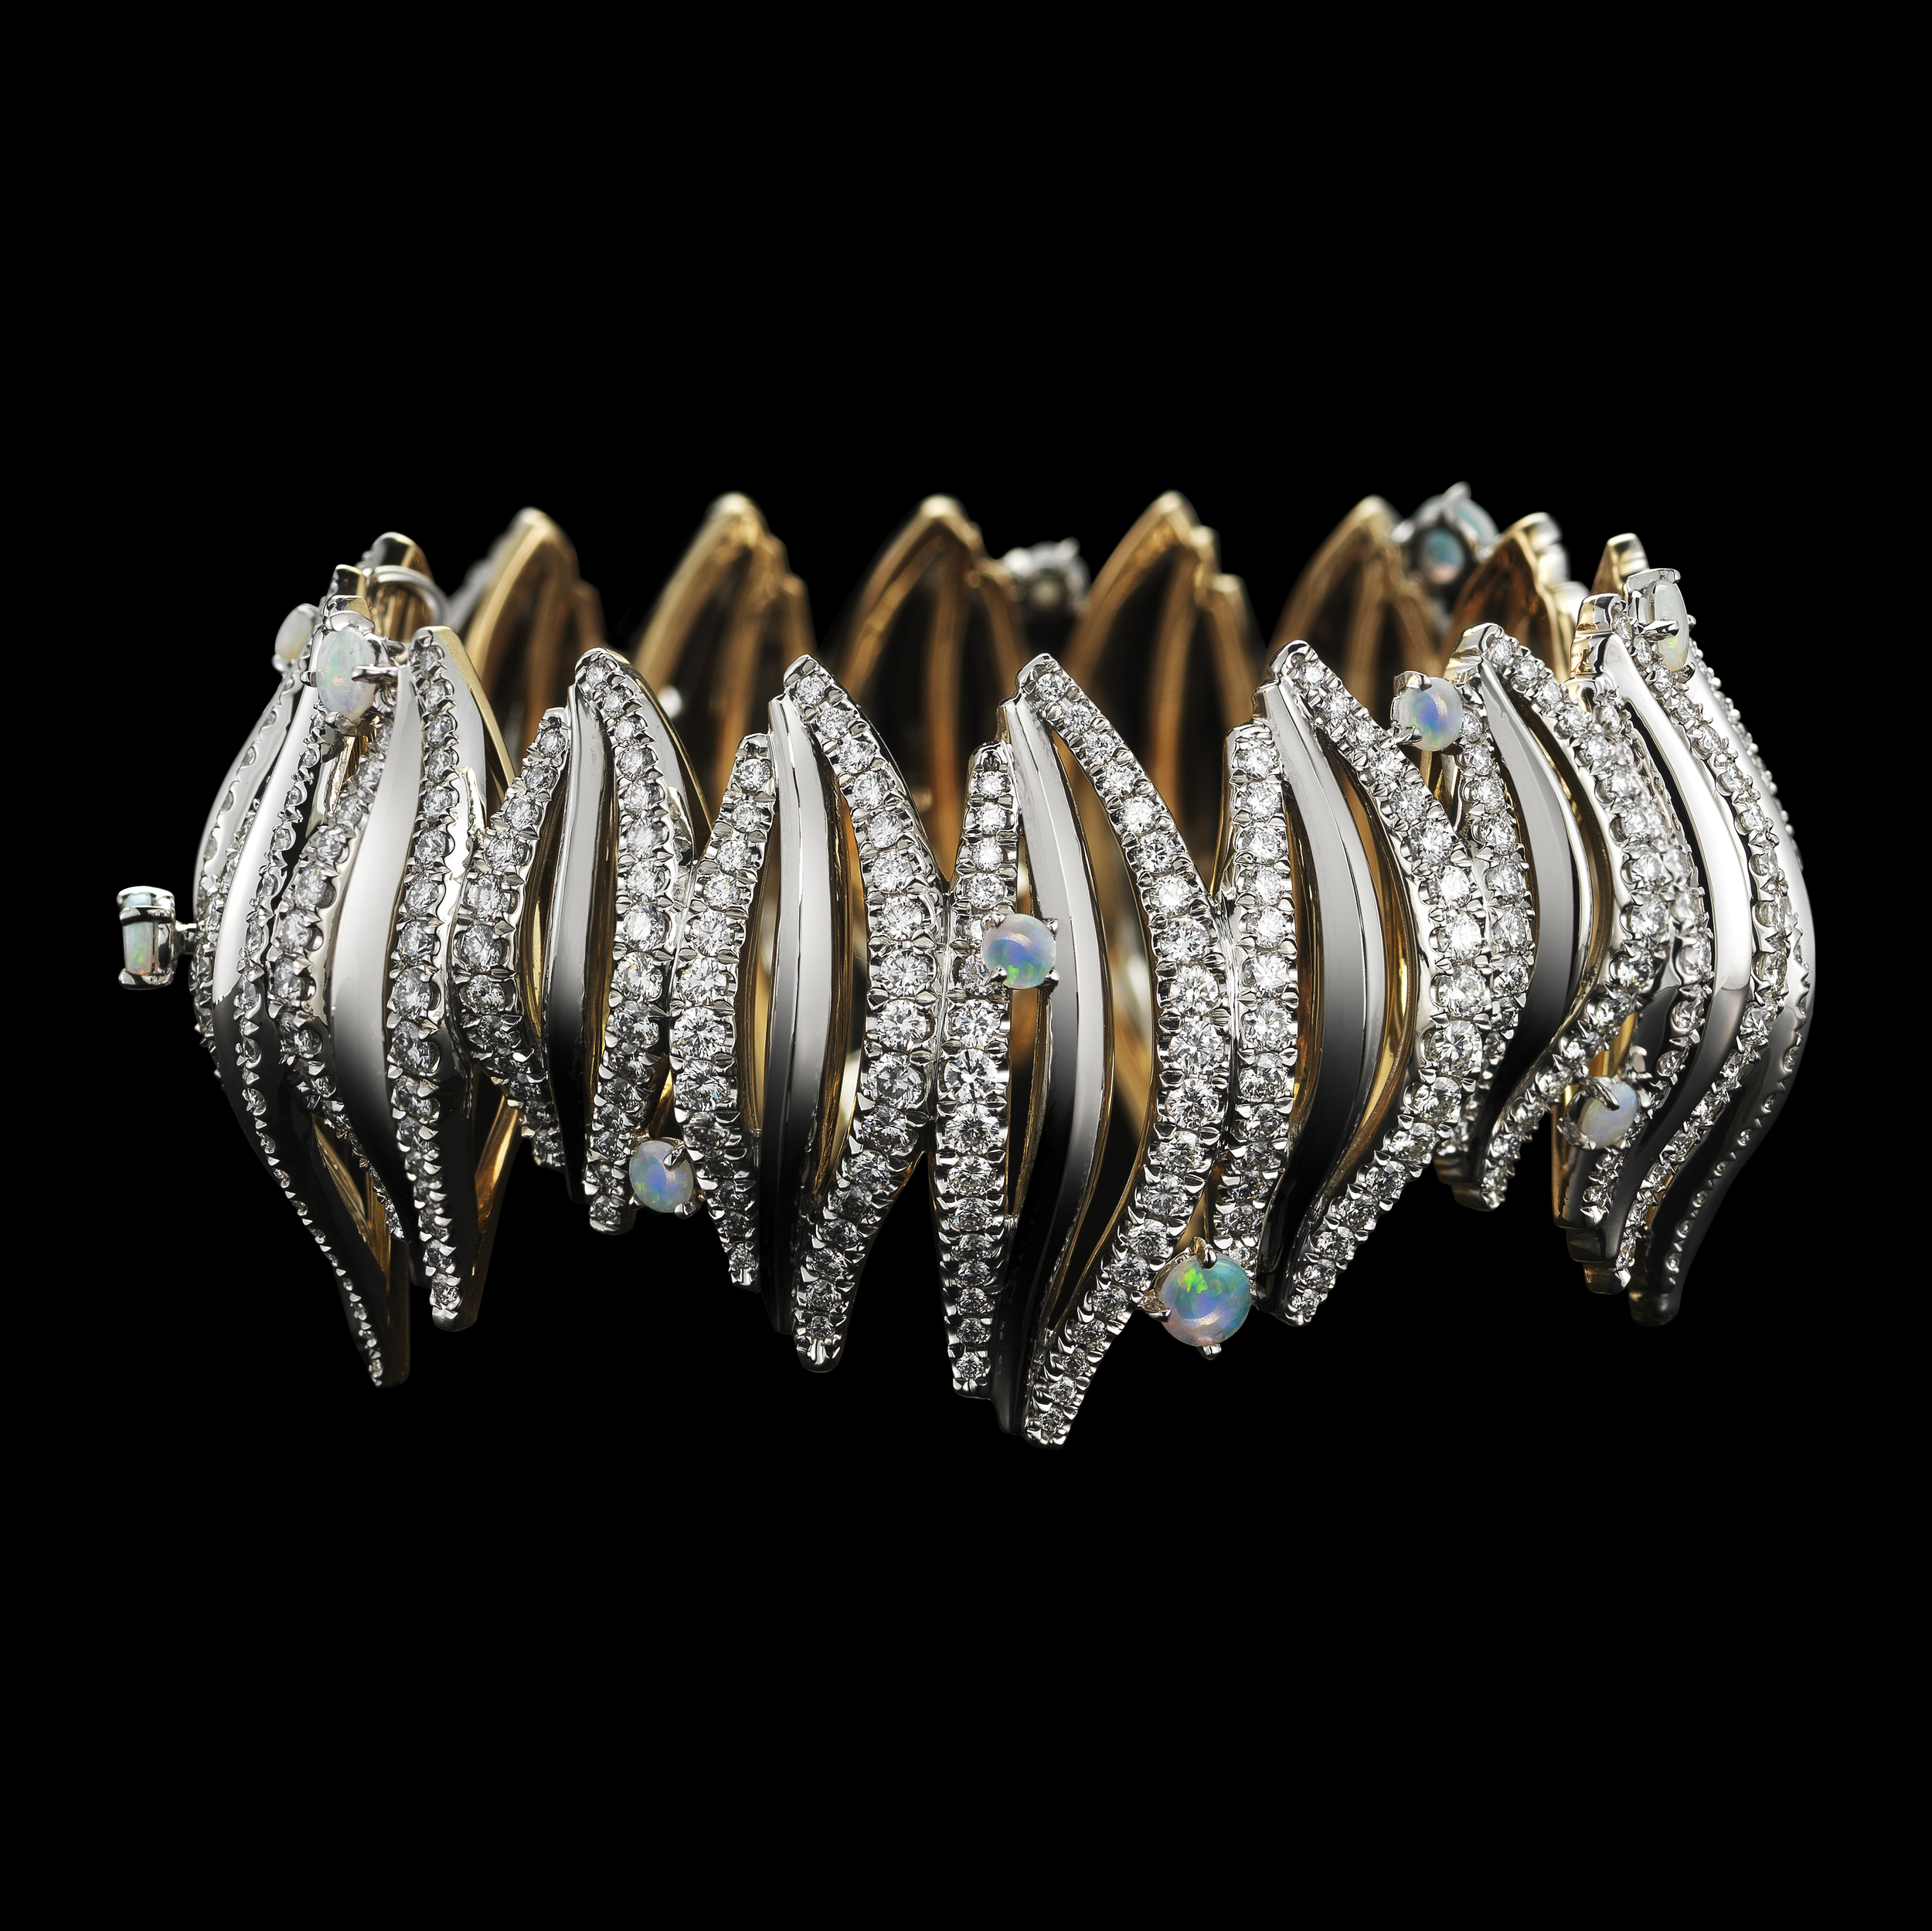 Branch diamond cuff with opal cabochons.